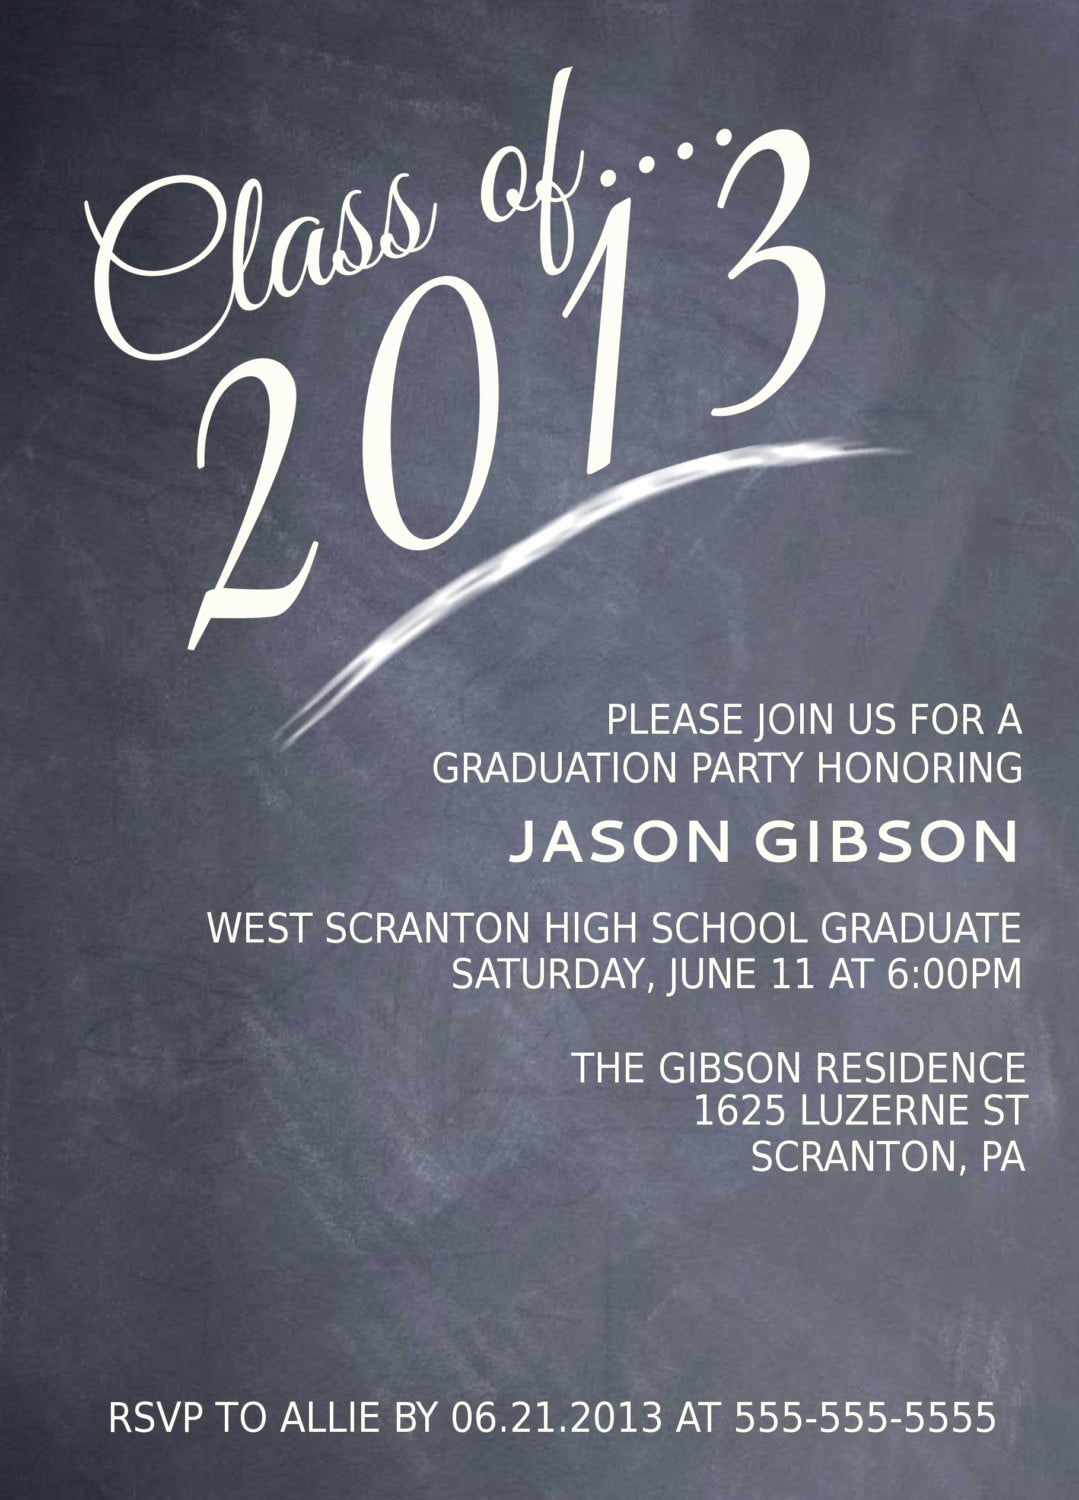 College Grad Party Invitation Awesome Printable Graduation Party Invitation Graduation Announcement